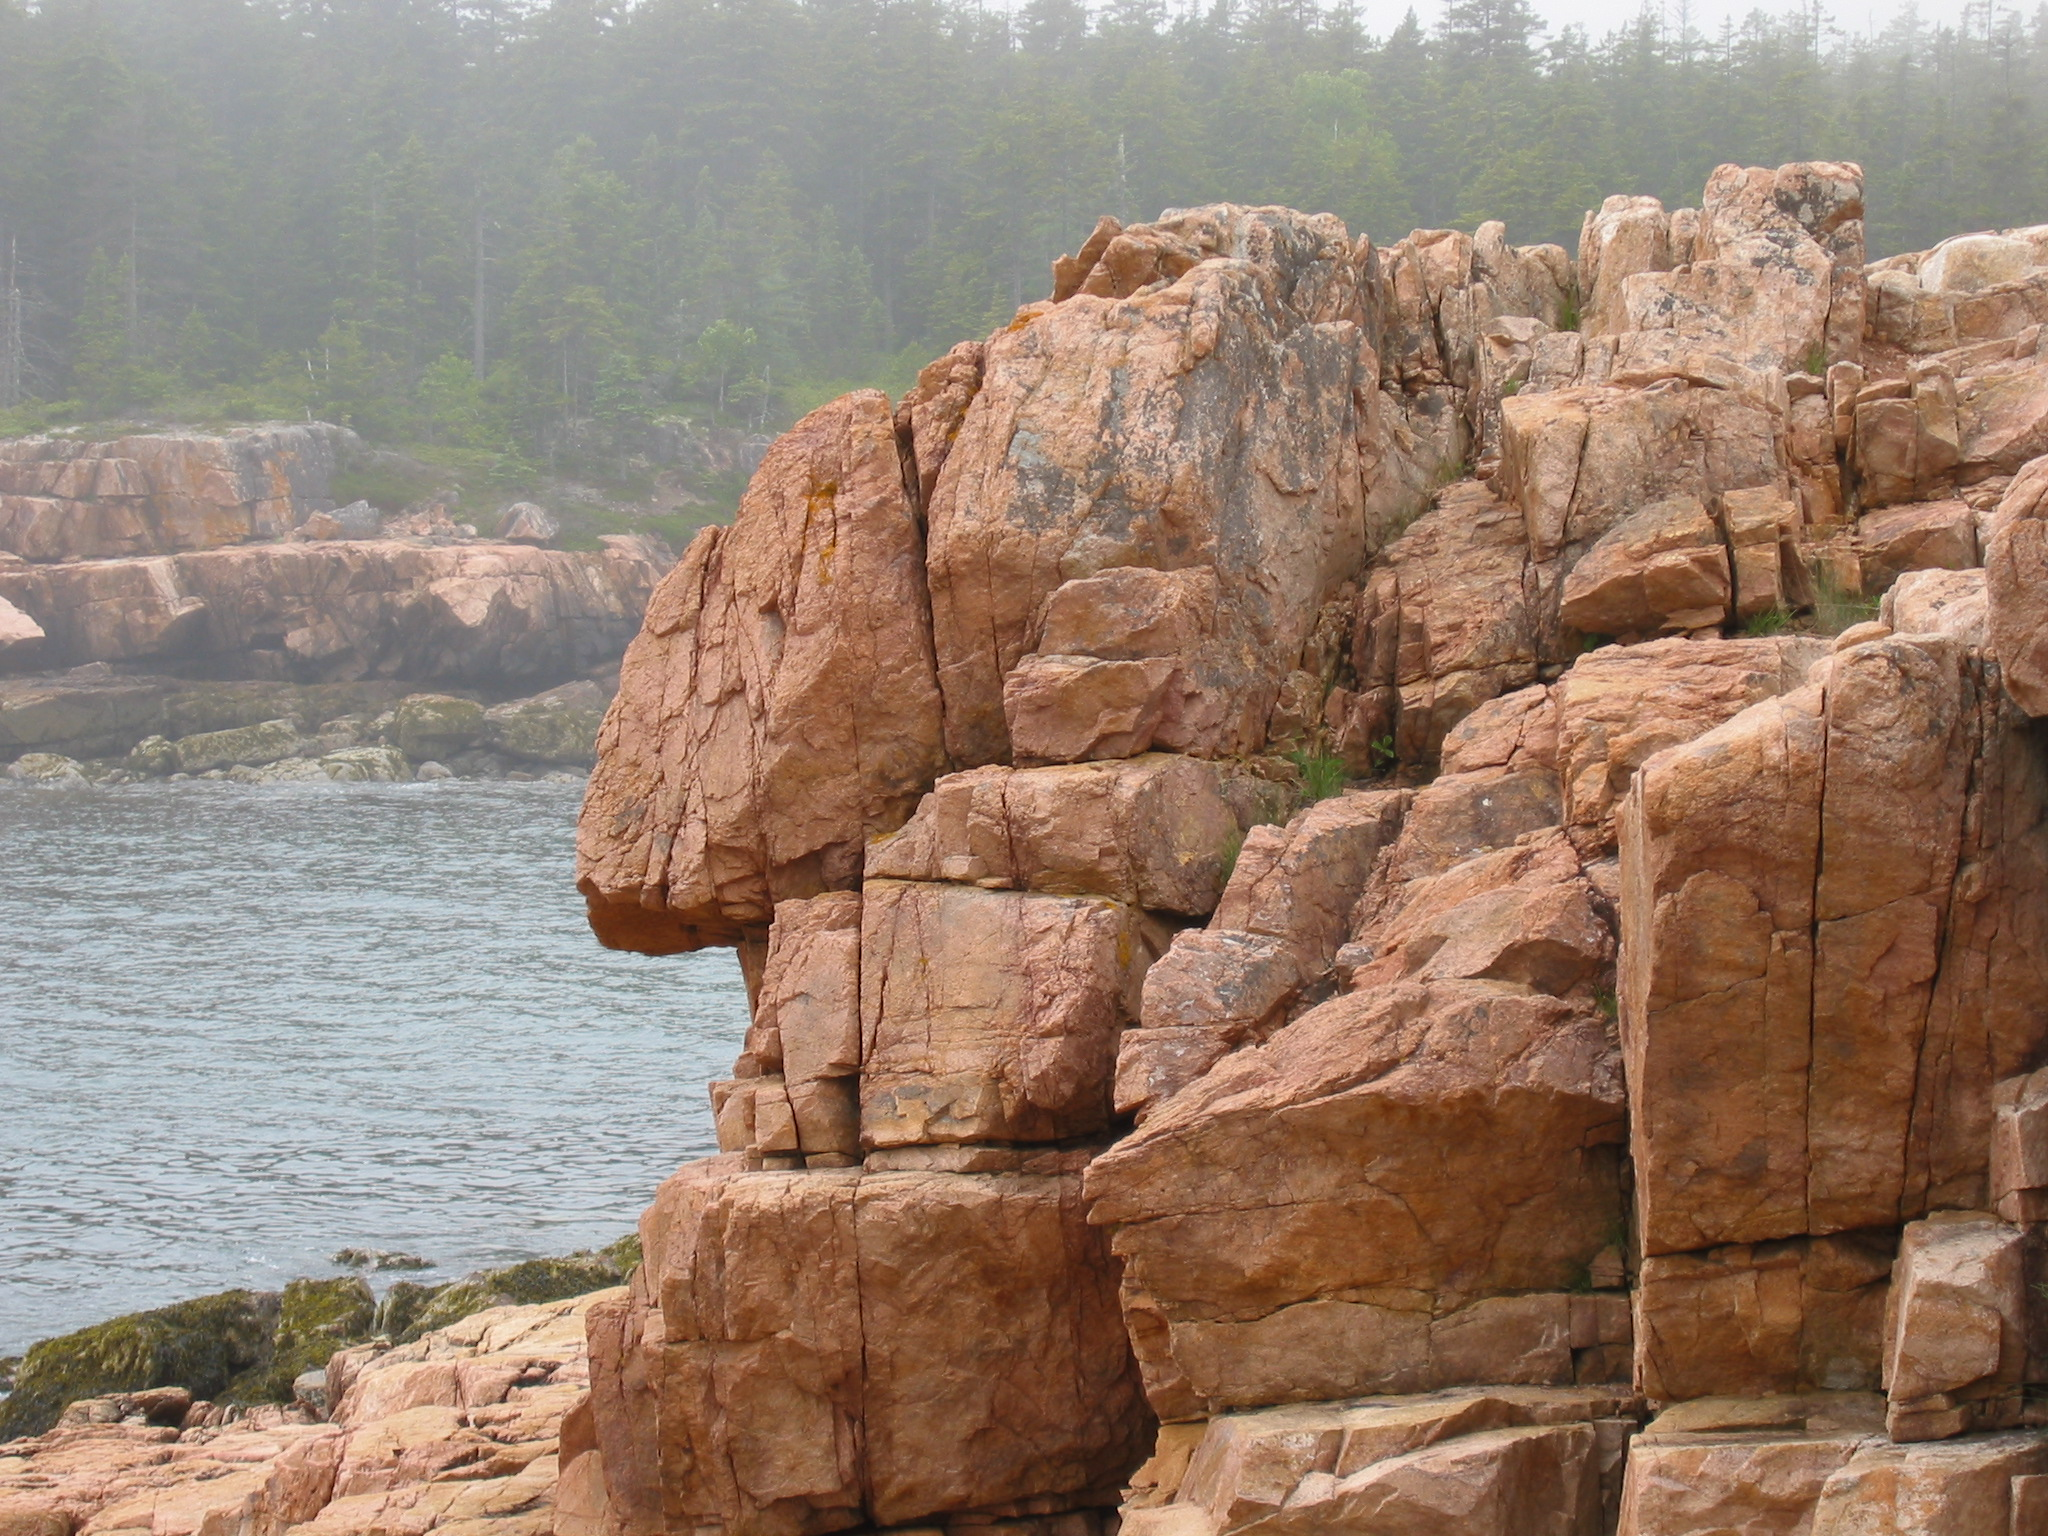 File:Anthropomorphic rock formation.jpg - Wikimedia Commons